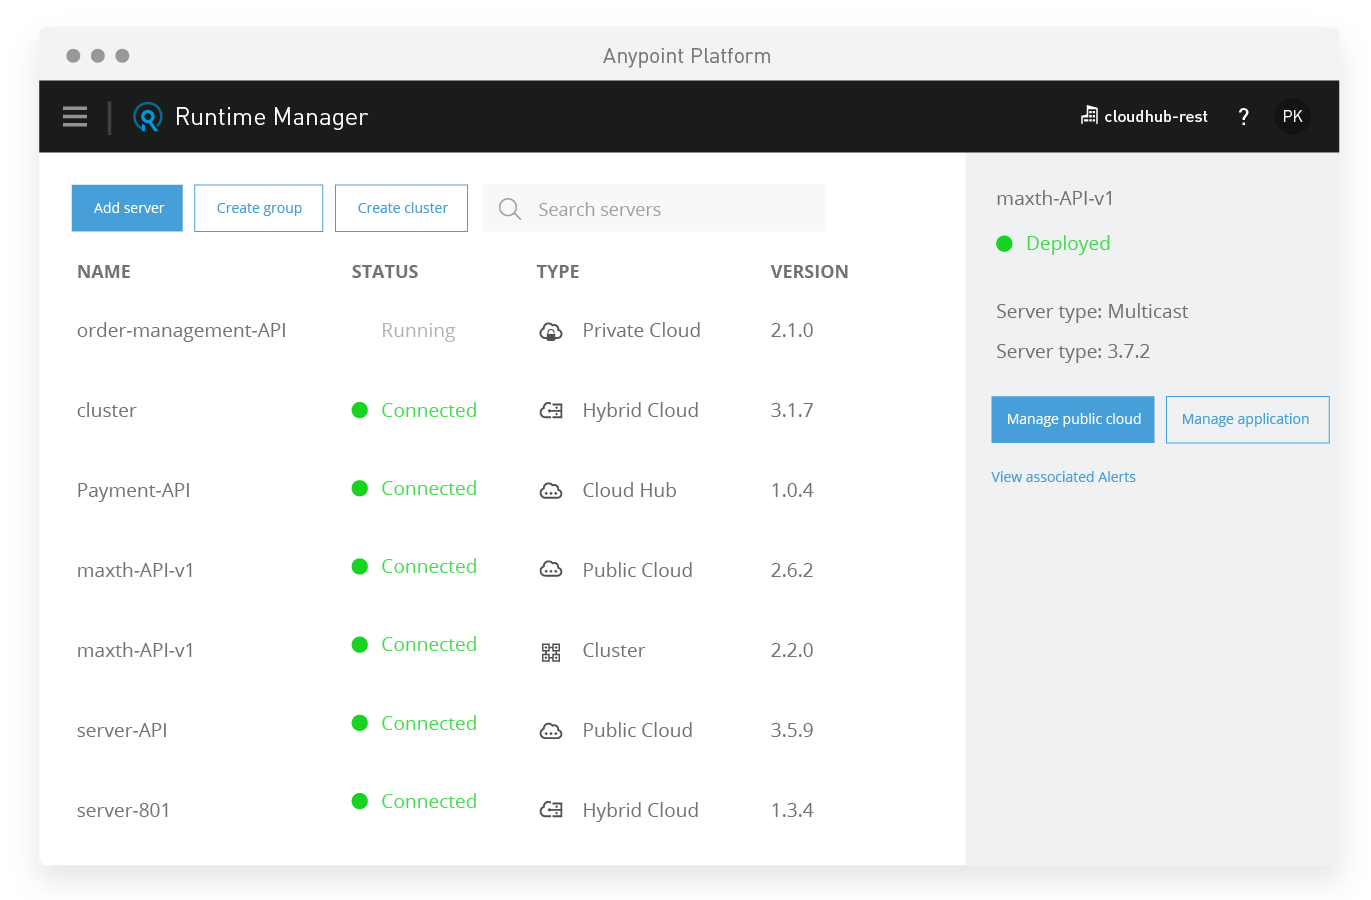 Run applications with Anypoint Platform